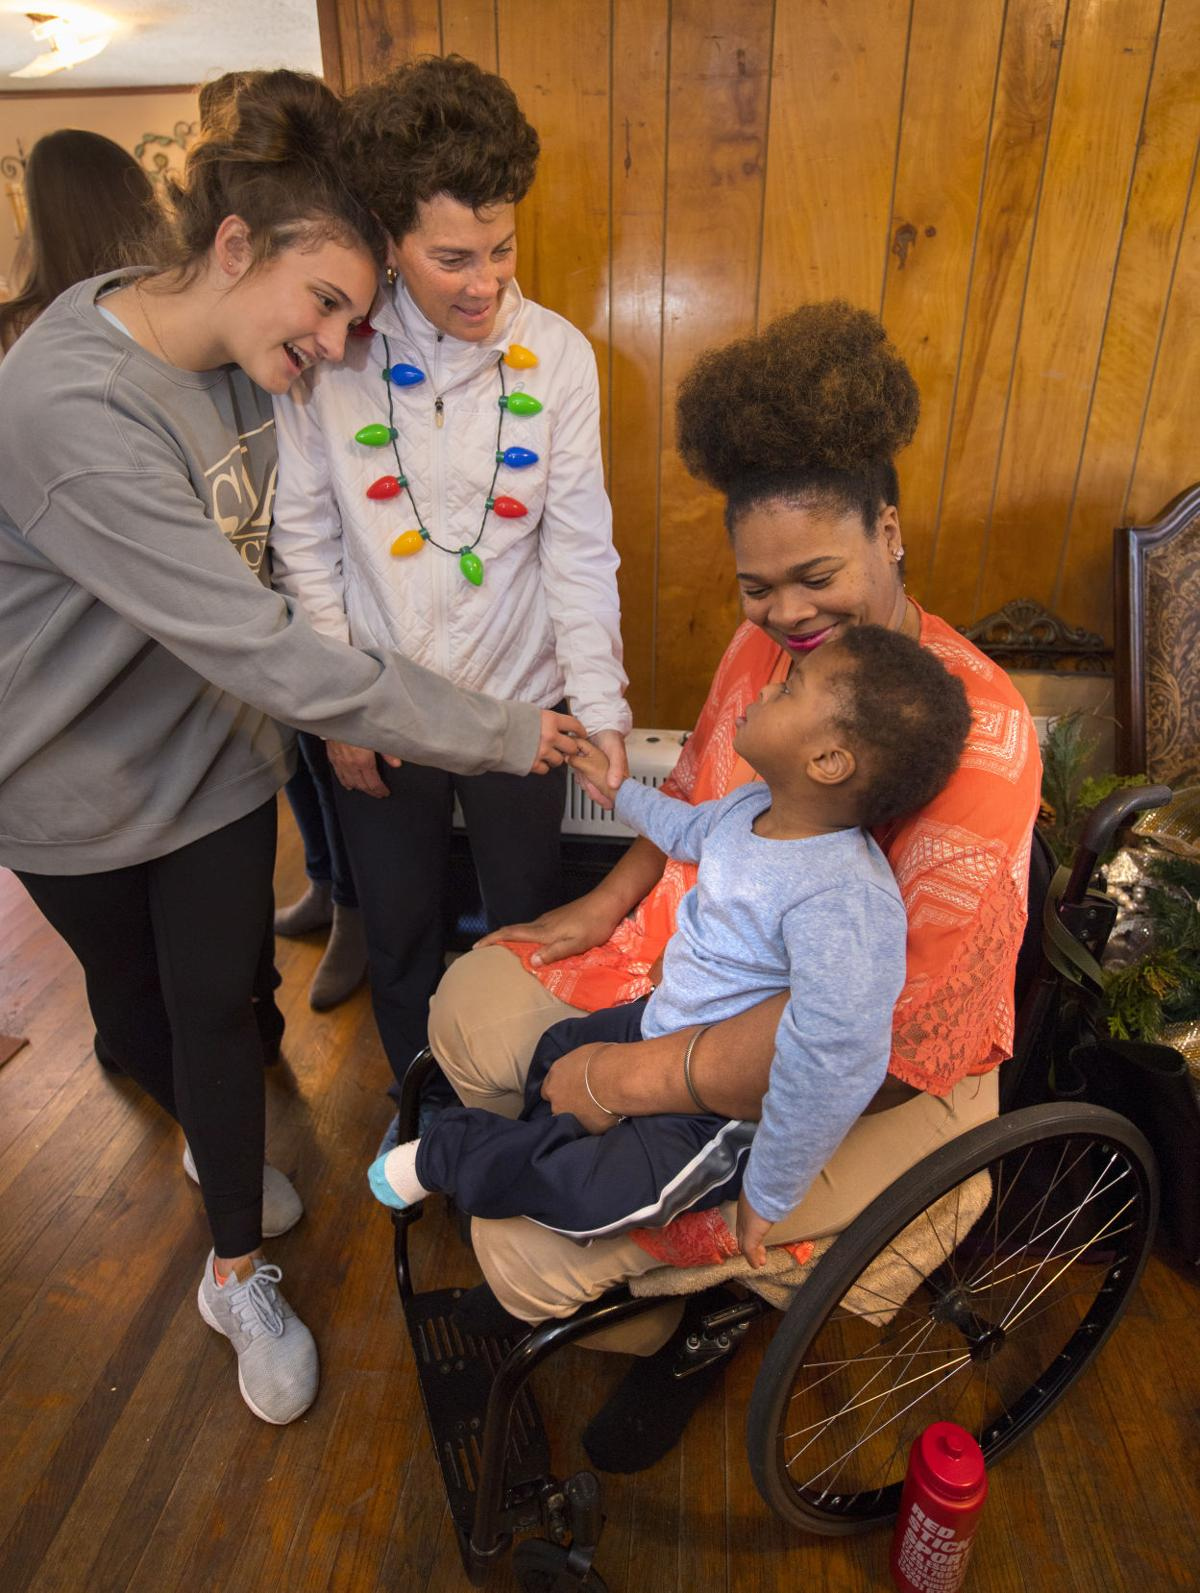 Tara High teammate reconnects with Christmas gift for woman paralyzed in 2017 domestic shooting